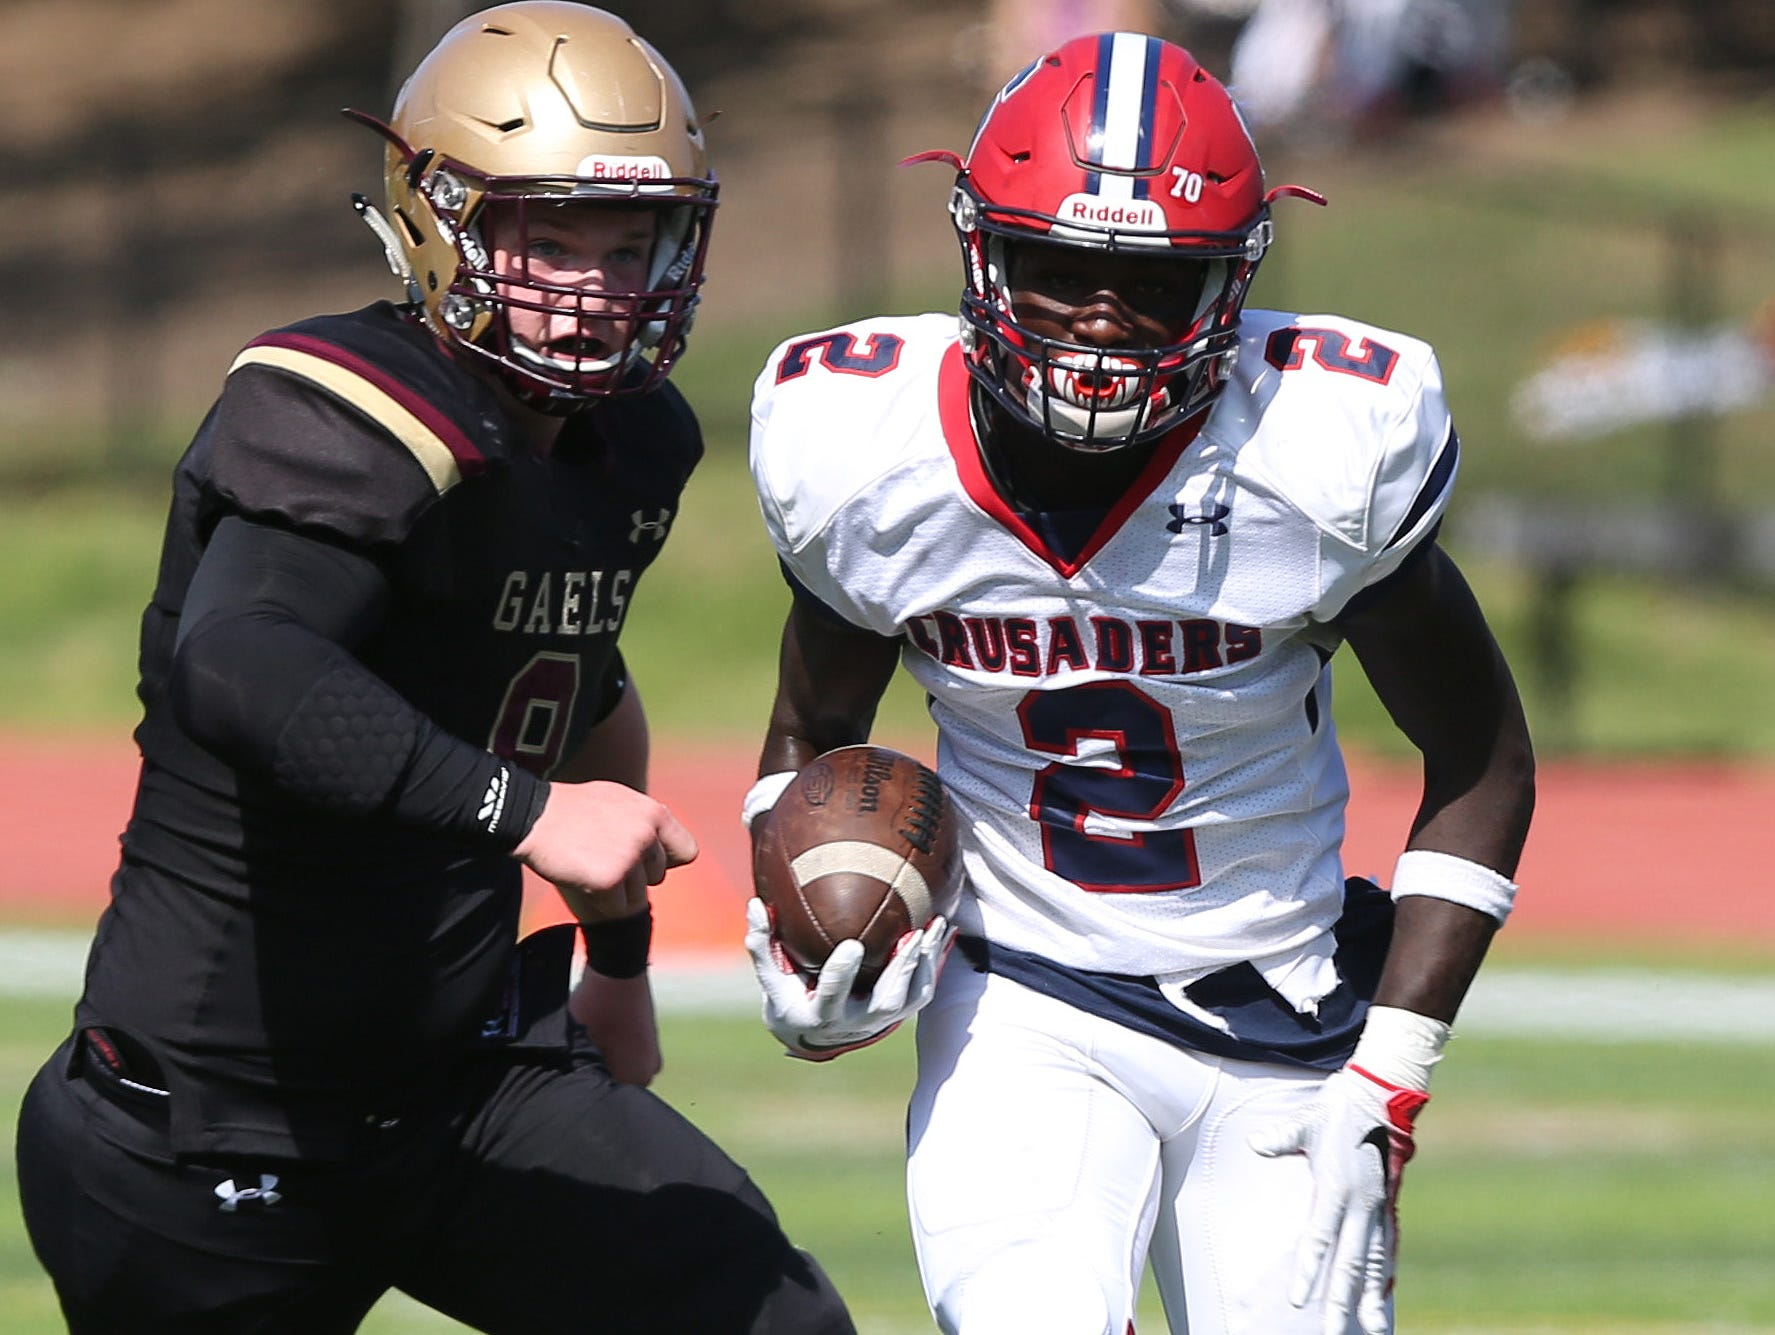 Stepinac's Atrilleon Williams (2) breaks away from Iona's Robert Rohan (8) as he runs into the end zone in the second quarter for his second touchdown of the game, during football action at Iona Prep in New Rochelle Sept. 17, 2016. Stepinac won the game 42-34.